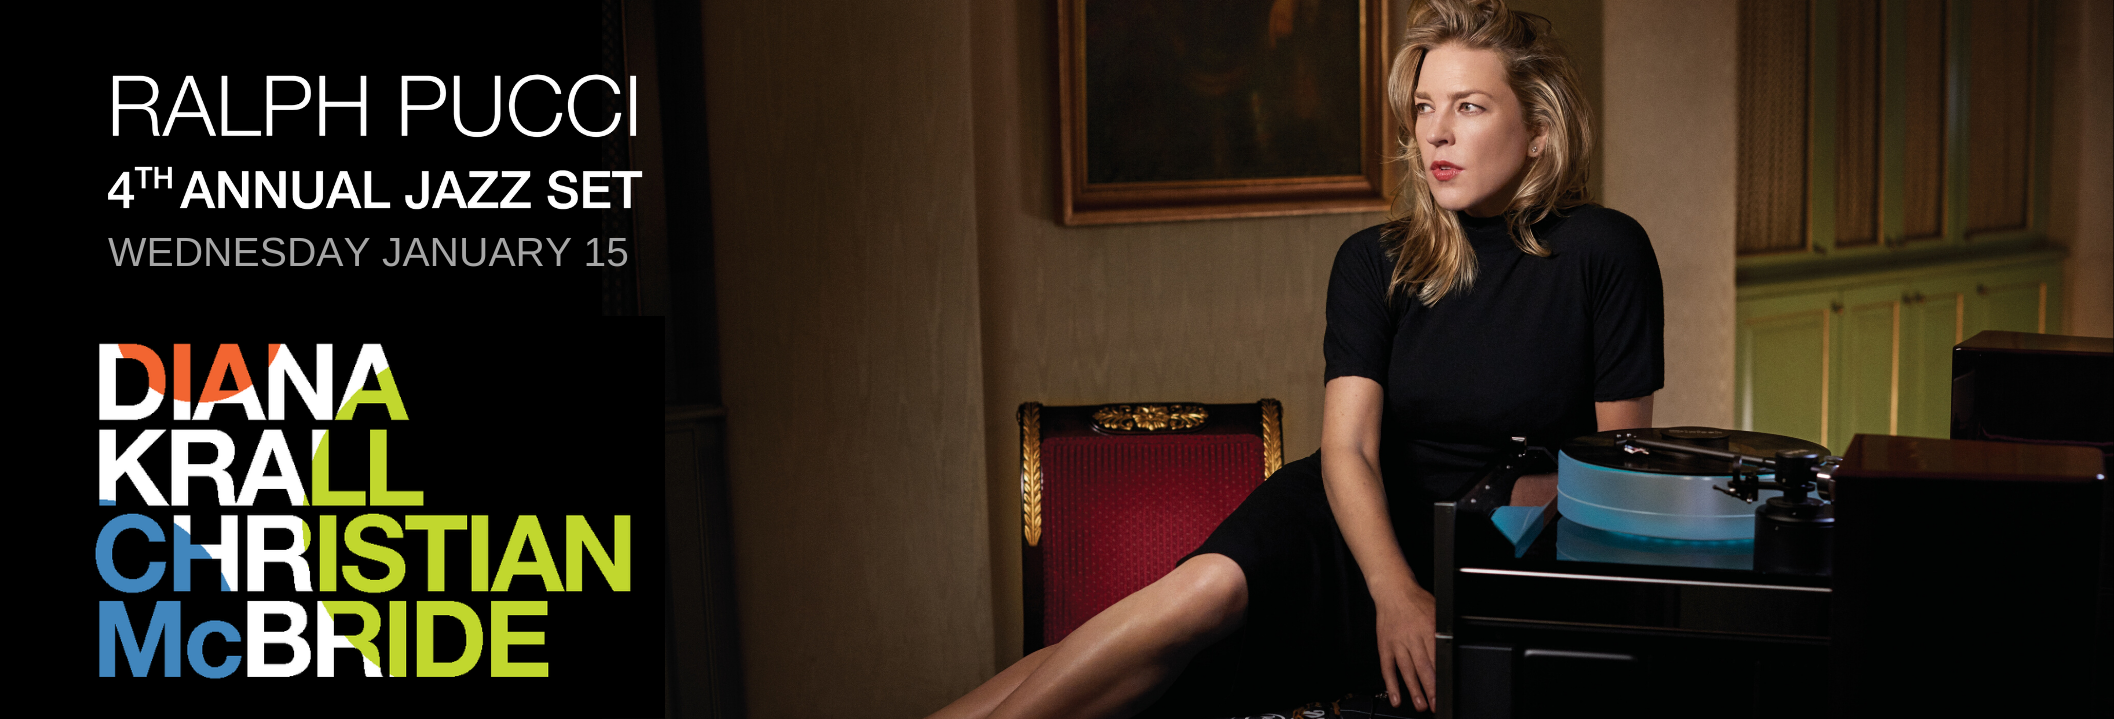 Ralph Pucci 4th Annual Jazz Set Featuring Diana Krall and Christian McBride